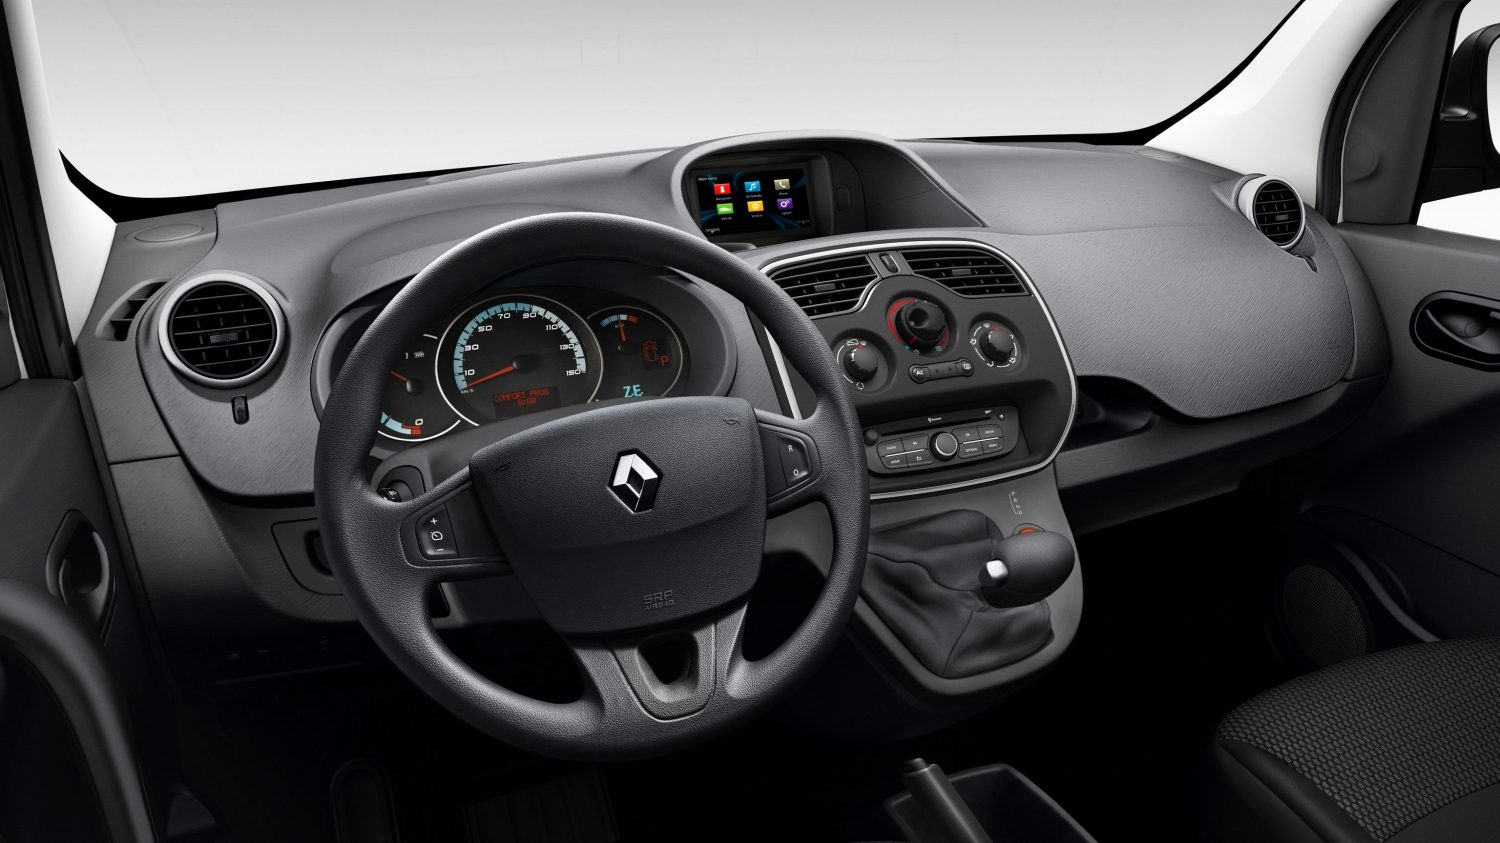 renault-kangoo-ze-33-f61e-ph2-design-interior-gallery-002.jpg.ximg.l_full_m.smart.jpg